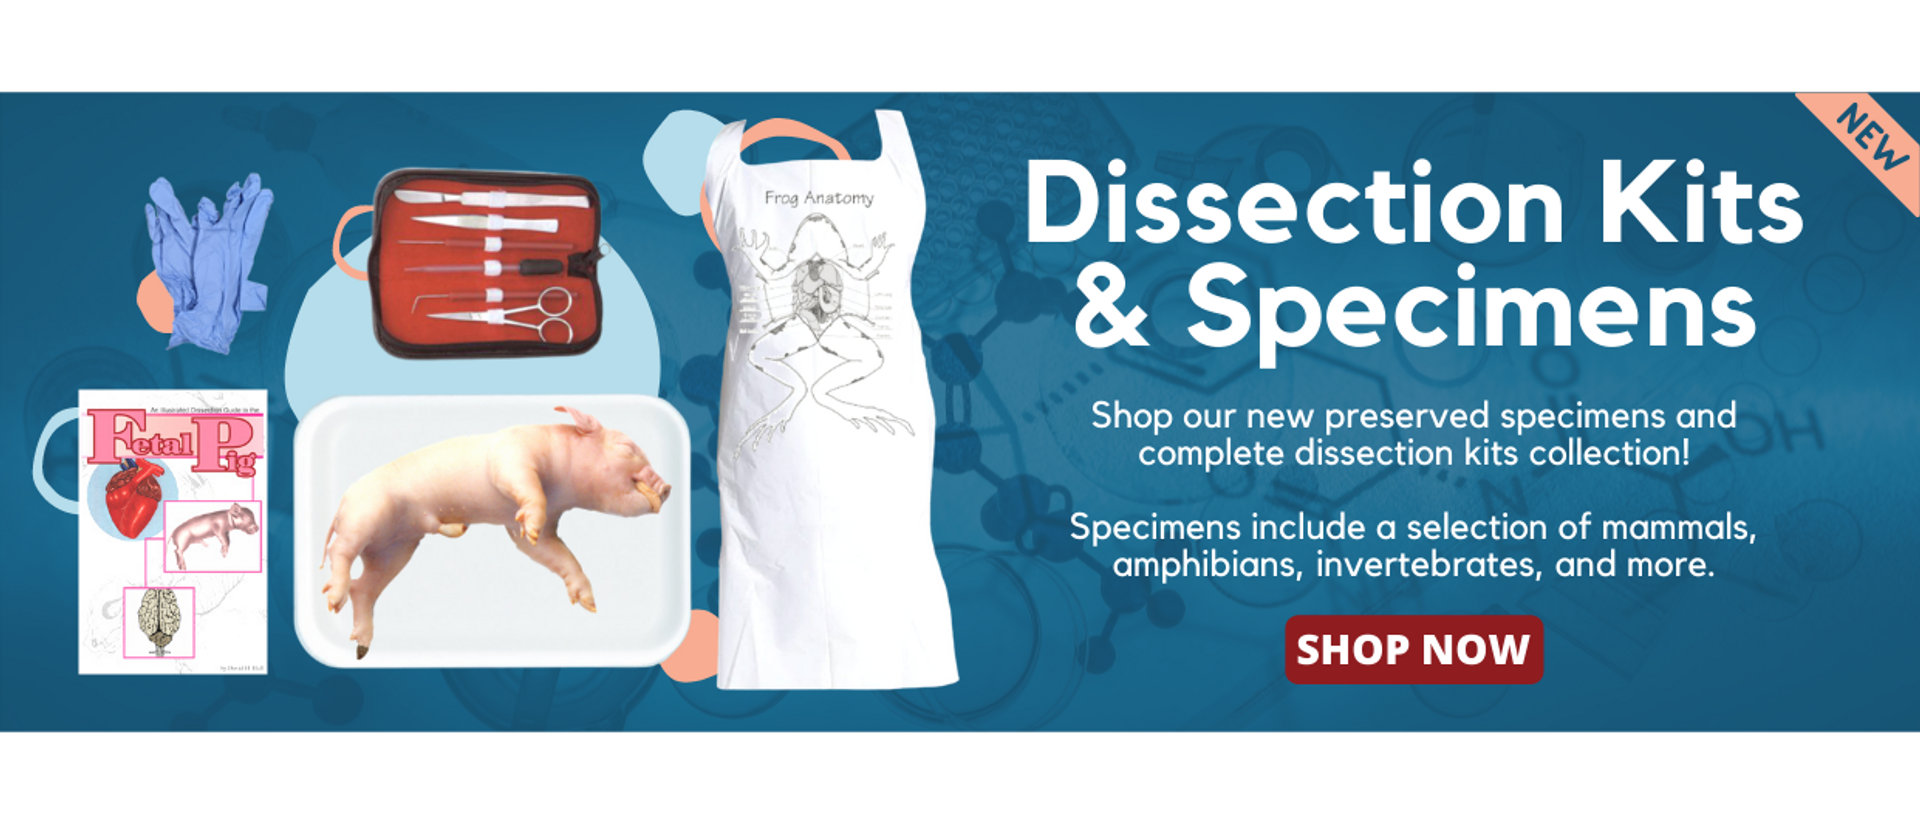 Anatomy Warehouse Dissection Kits and Specimens selection of mammas, amphibians, invertebrates, and more.